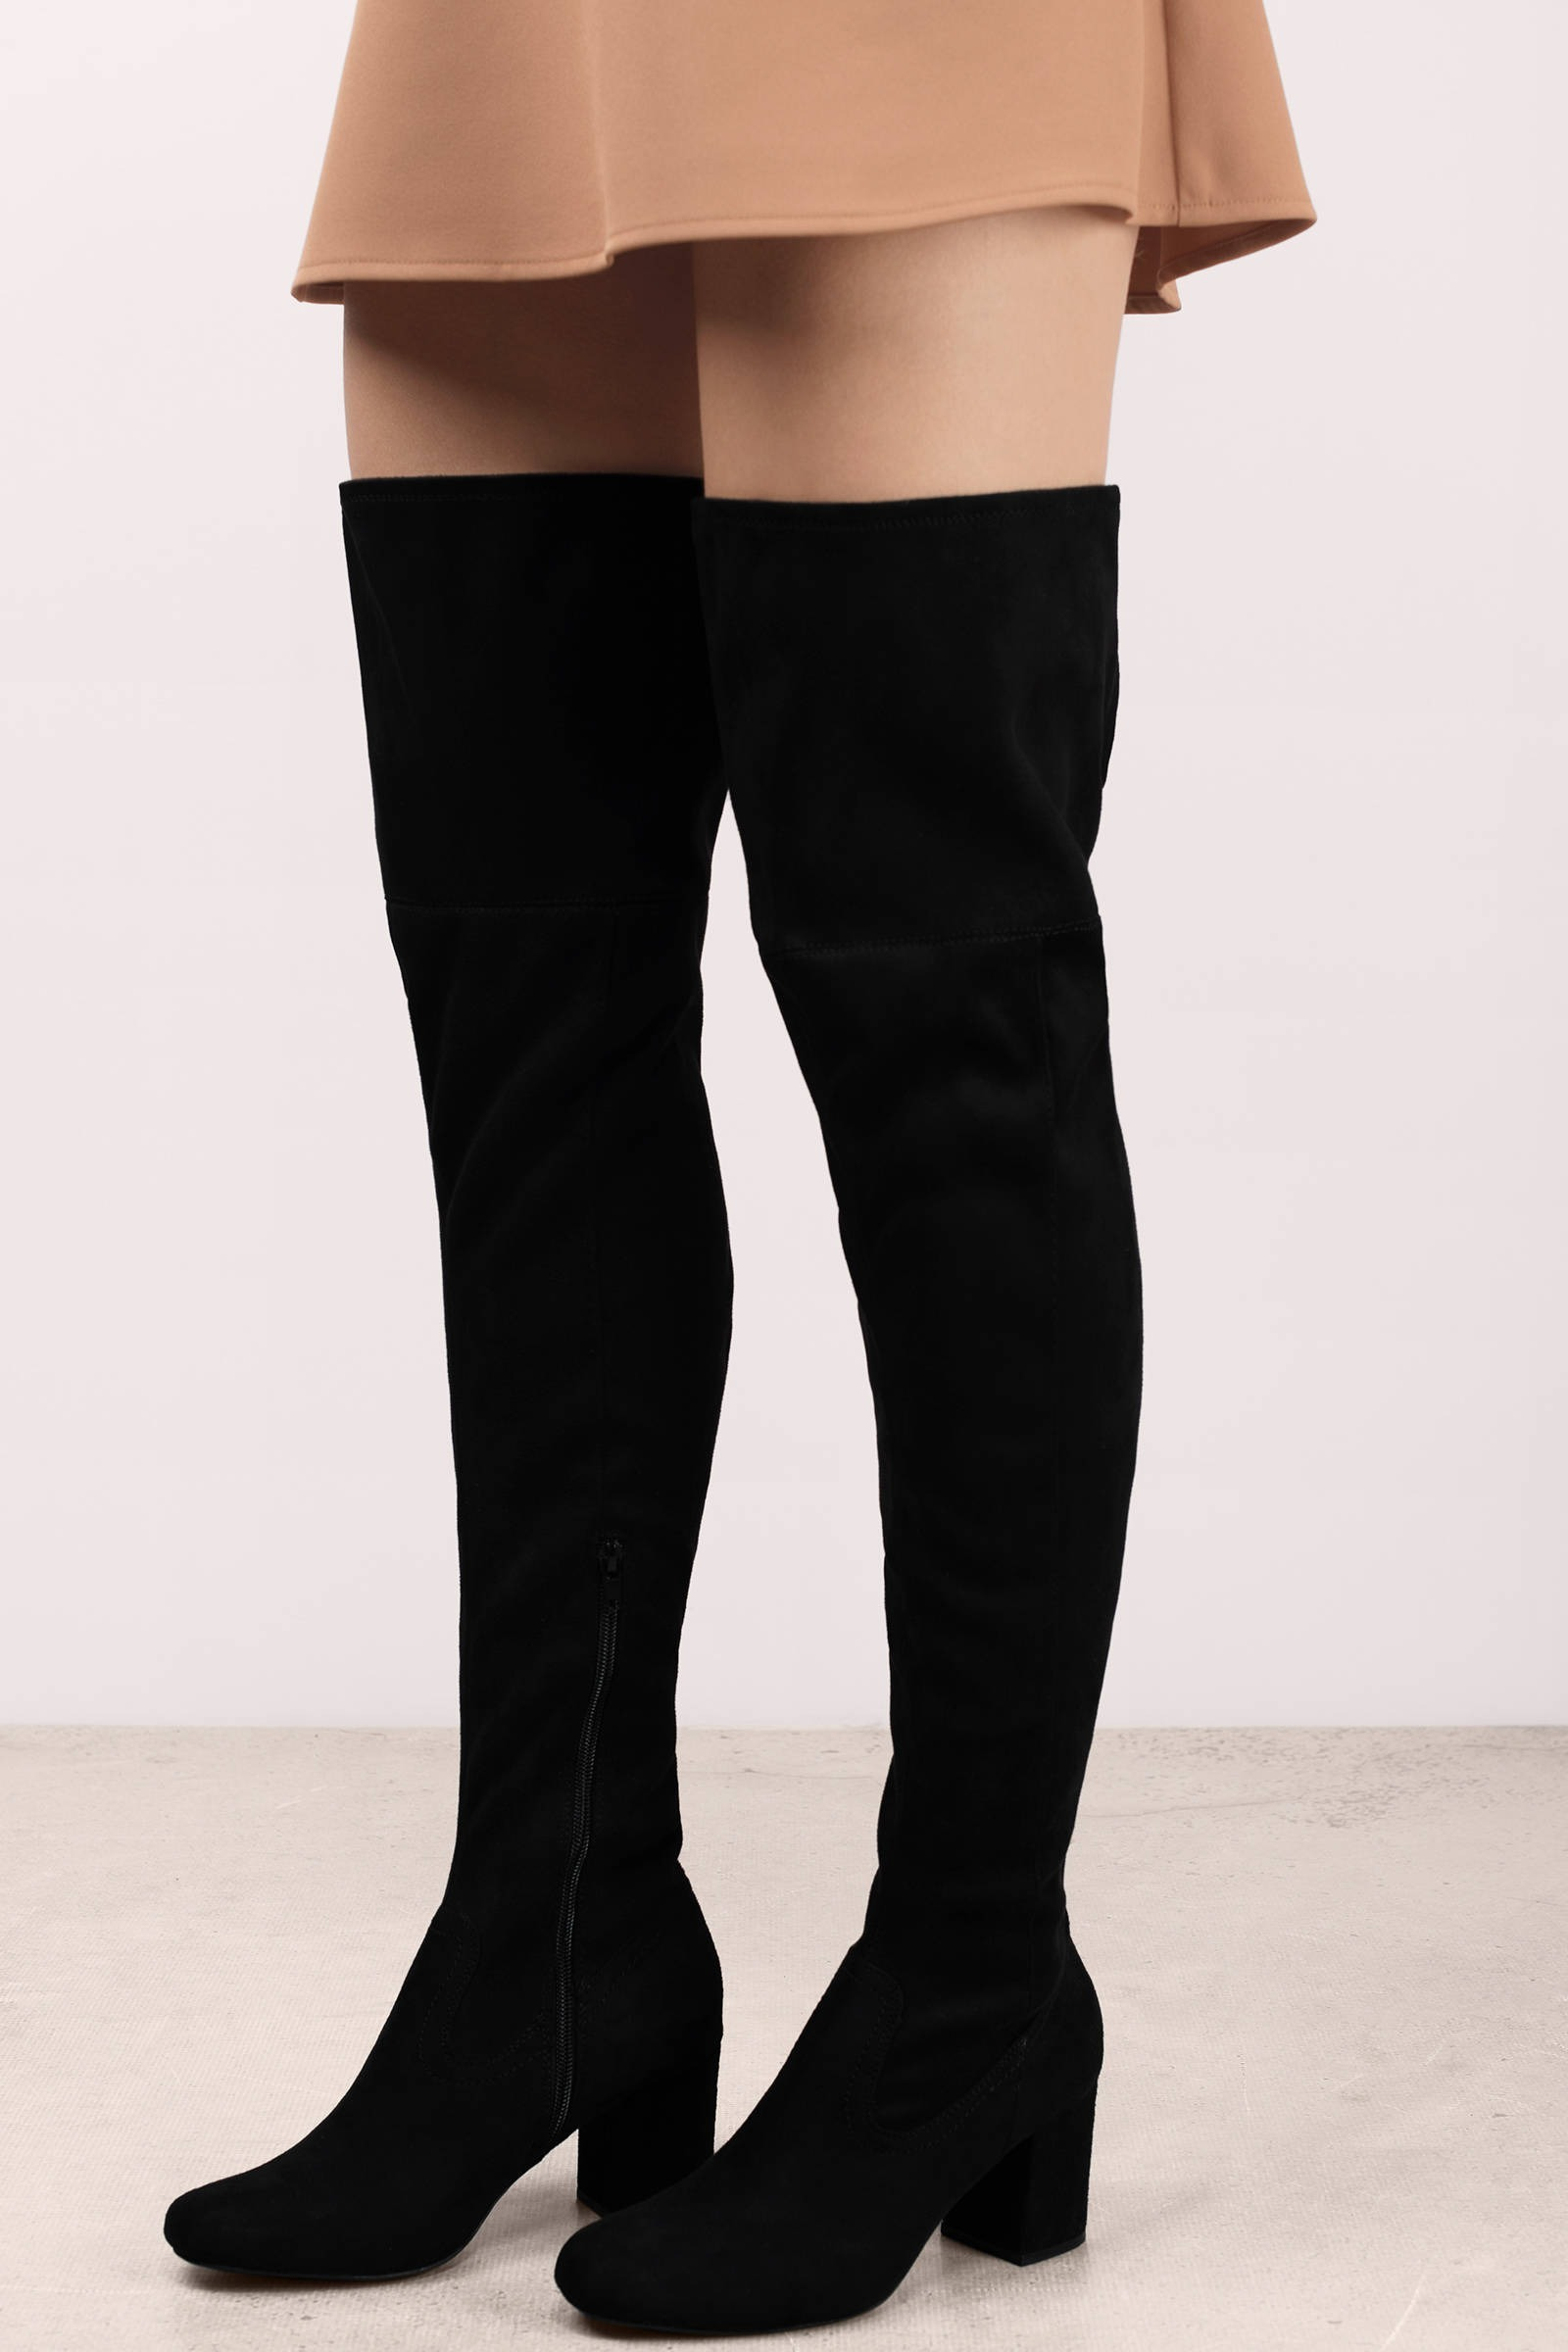 Black Boots - Black Boots - Thigh High Boots - $49.00